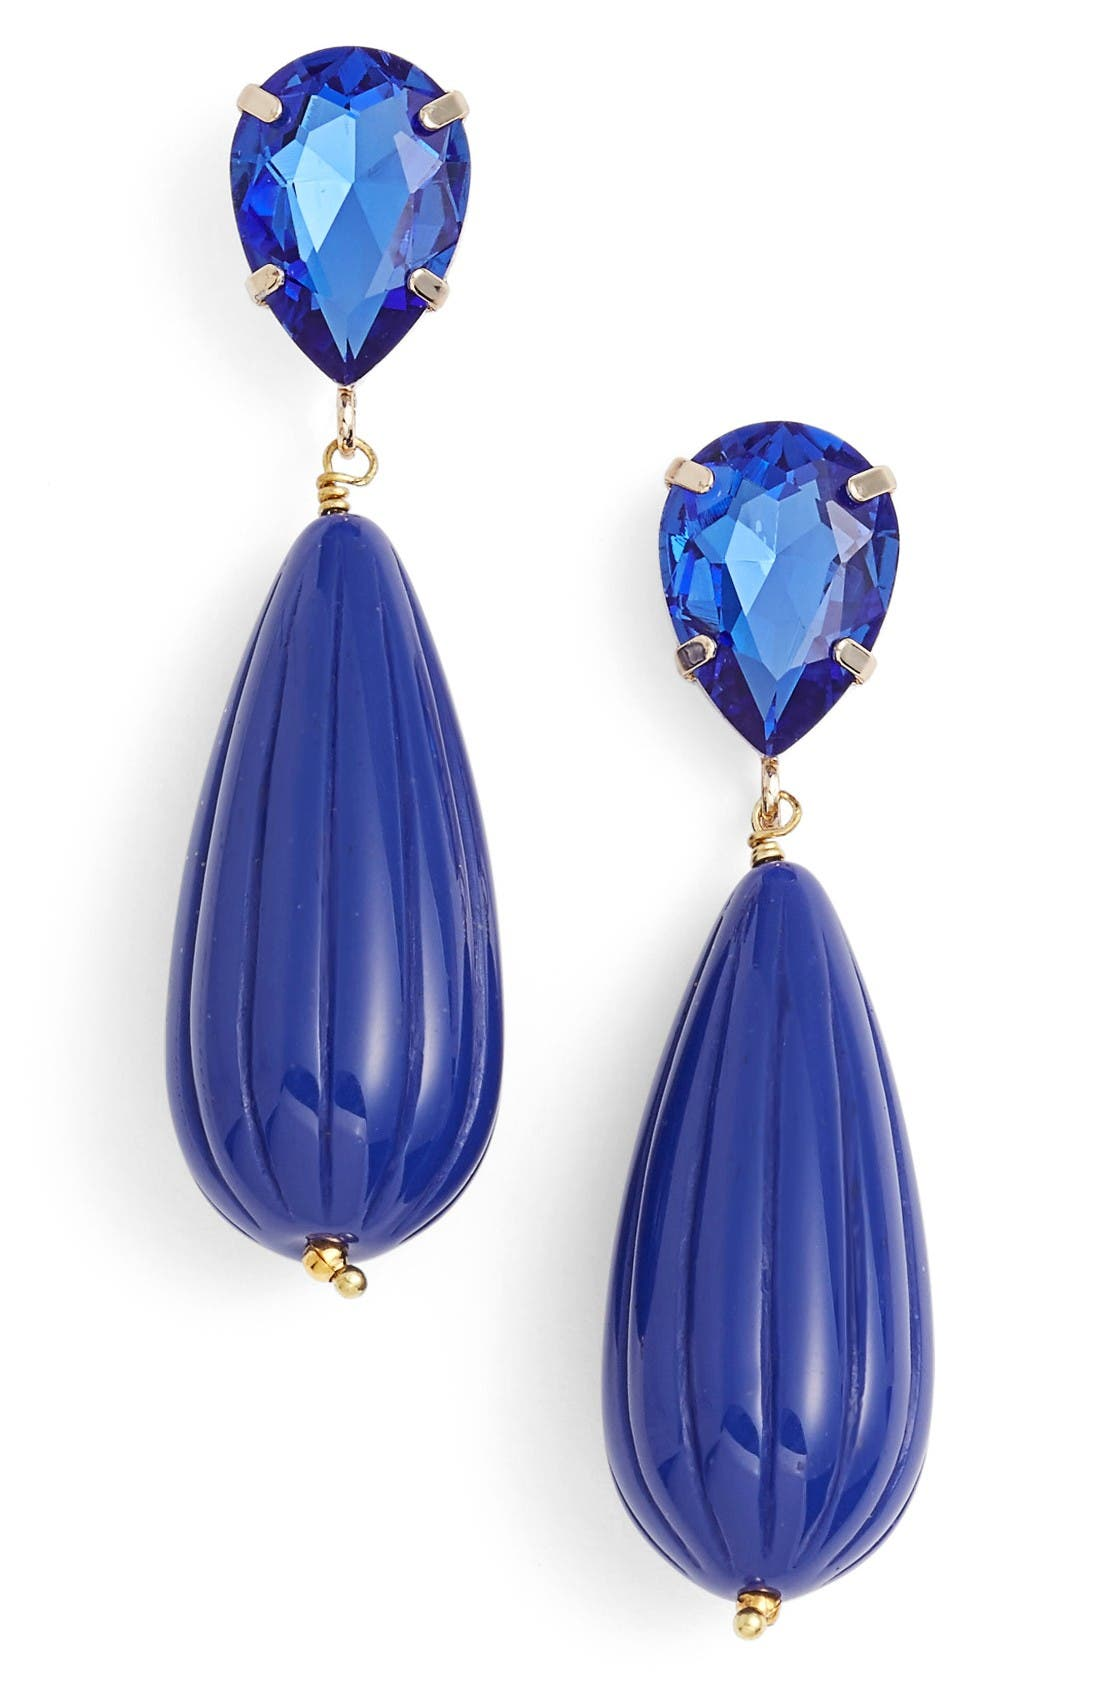 Alternate Image 1 Selected - ZENZII Teardrop Earrings